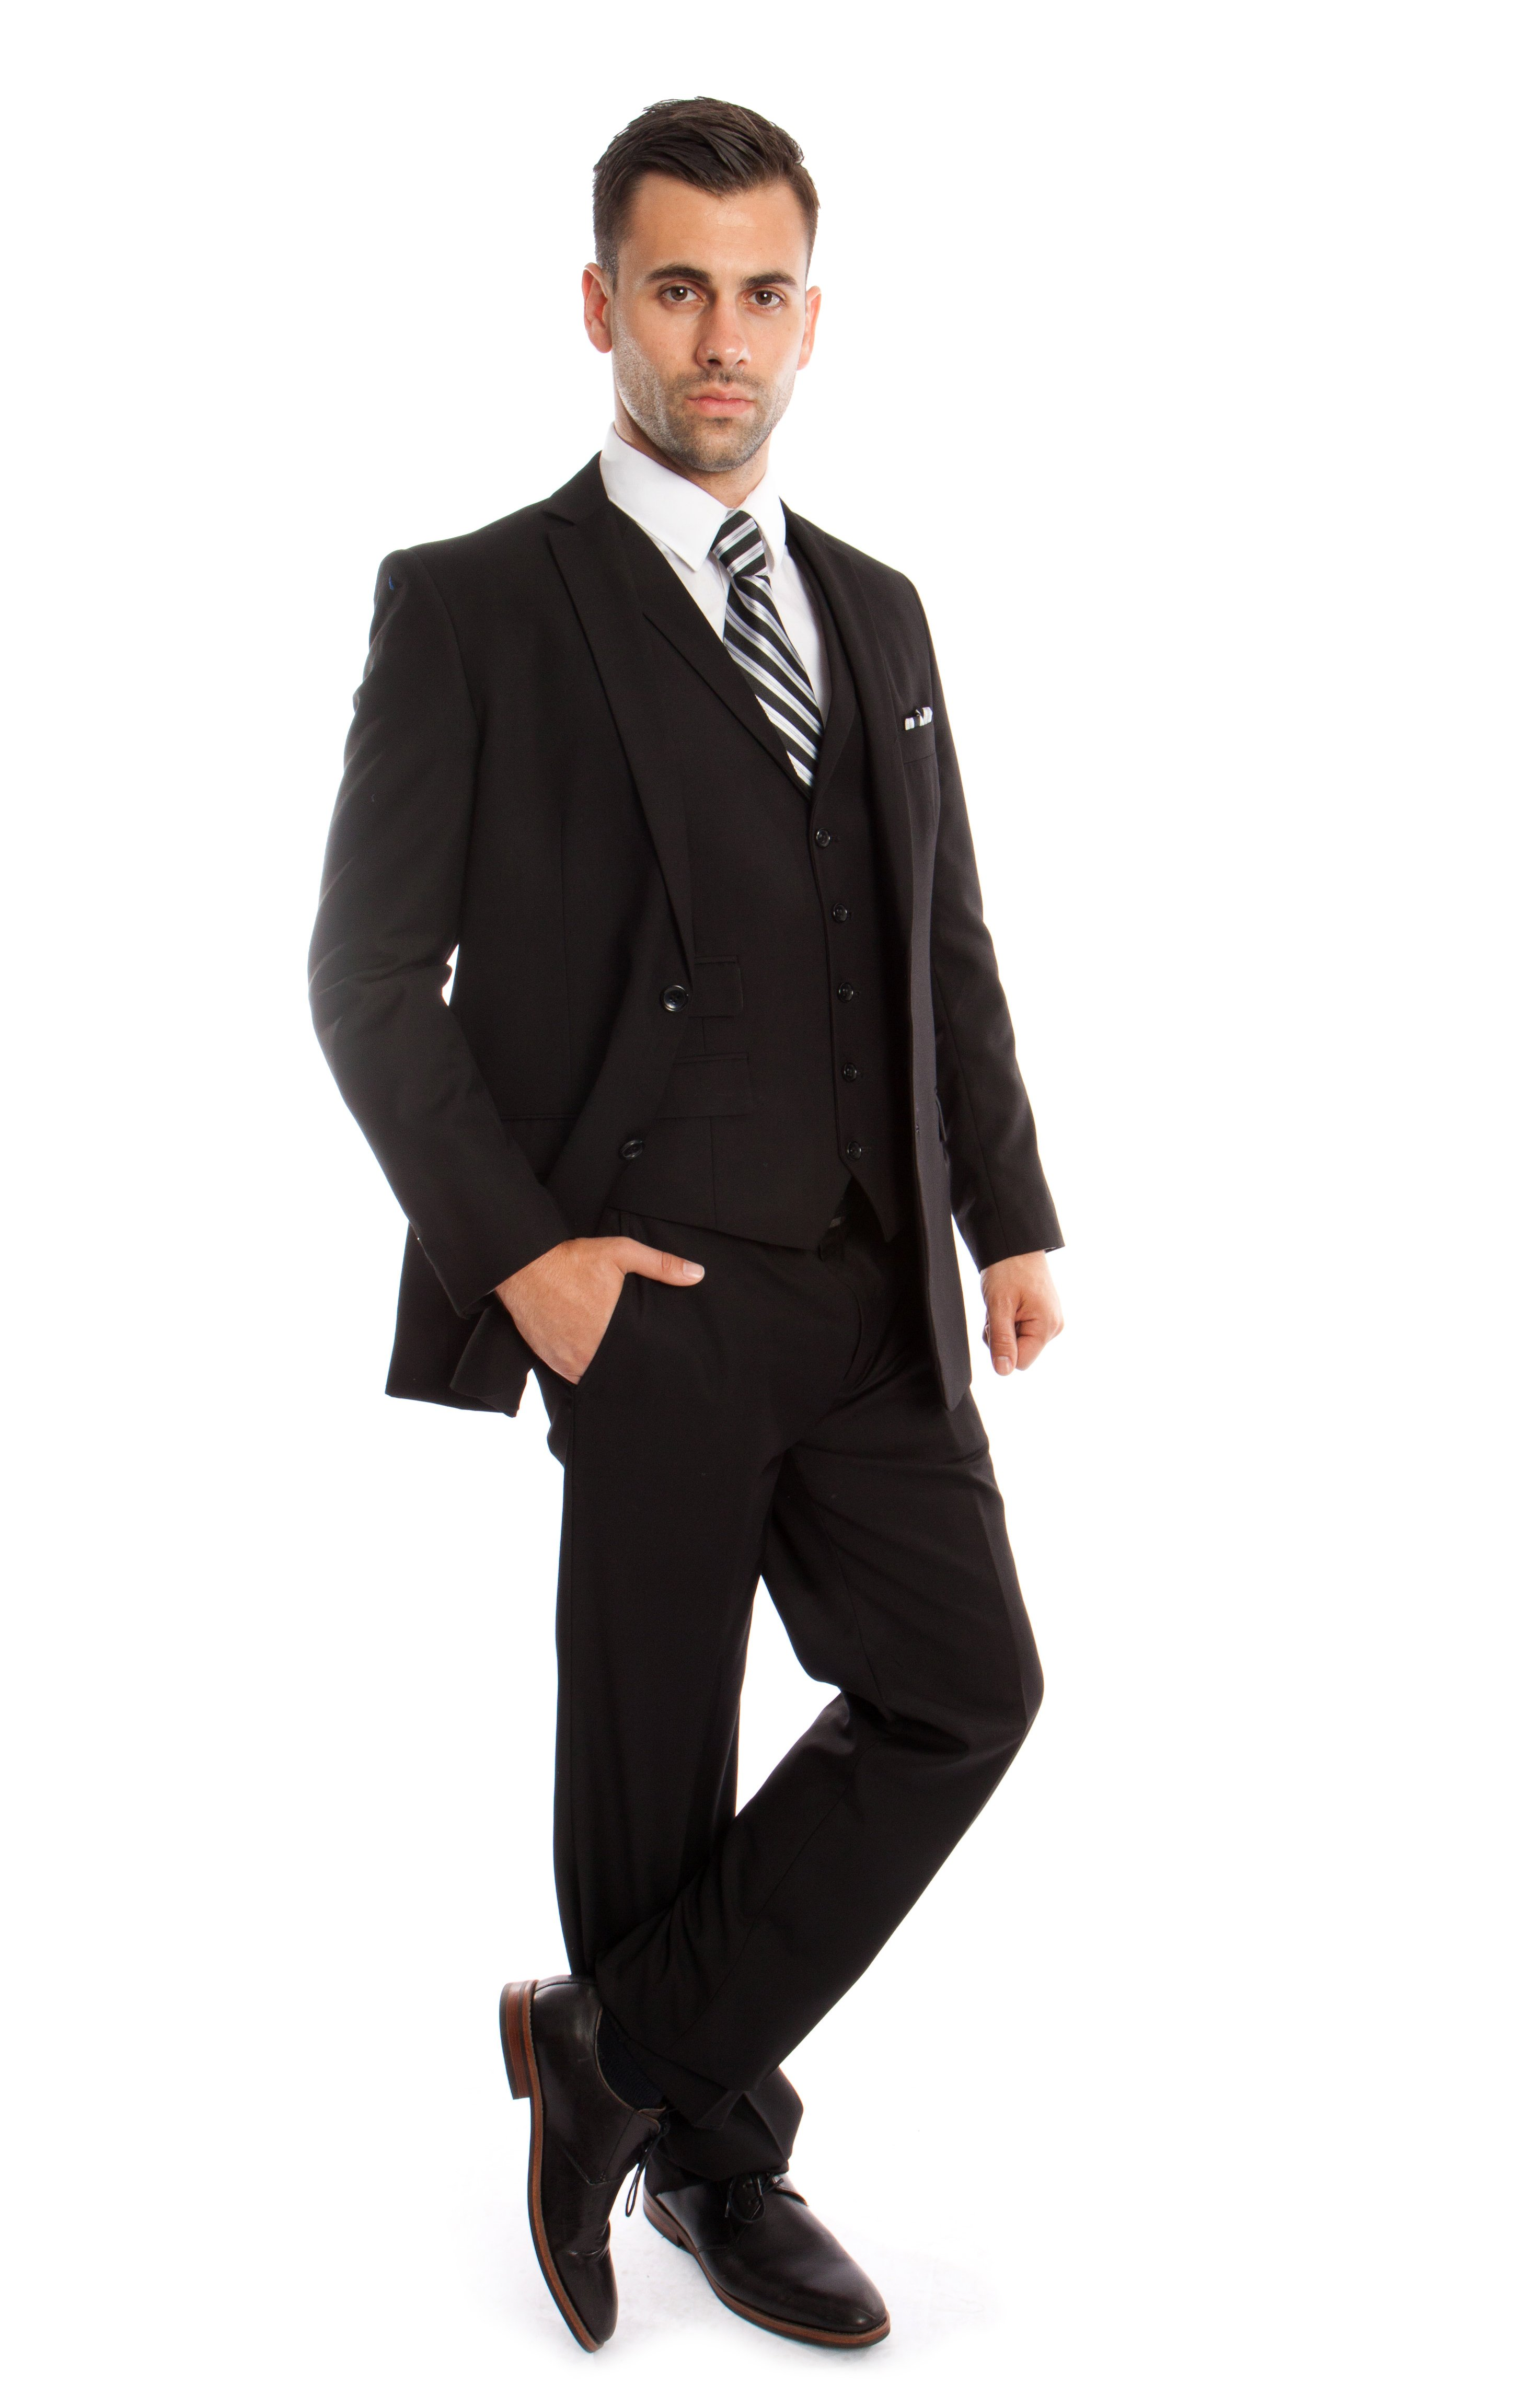 Mens Tuxedo Suit Set 3 Piece Suits with Collar Vest Plus Free...